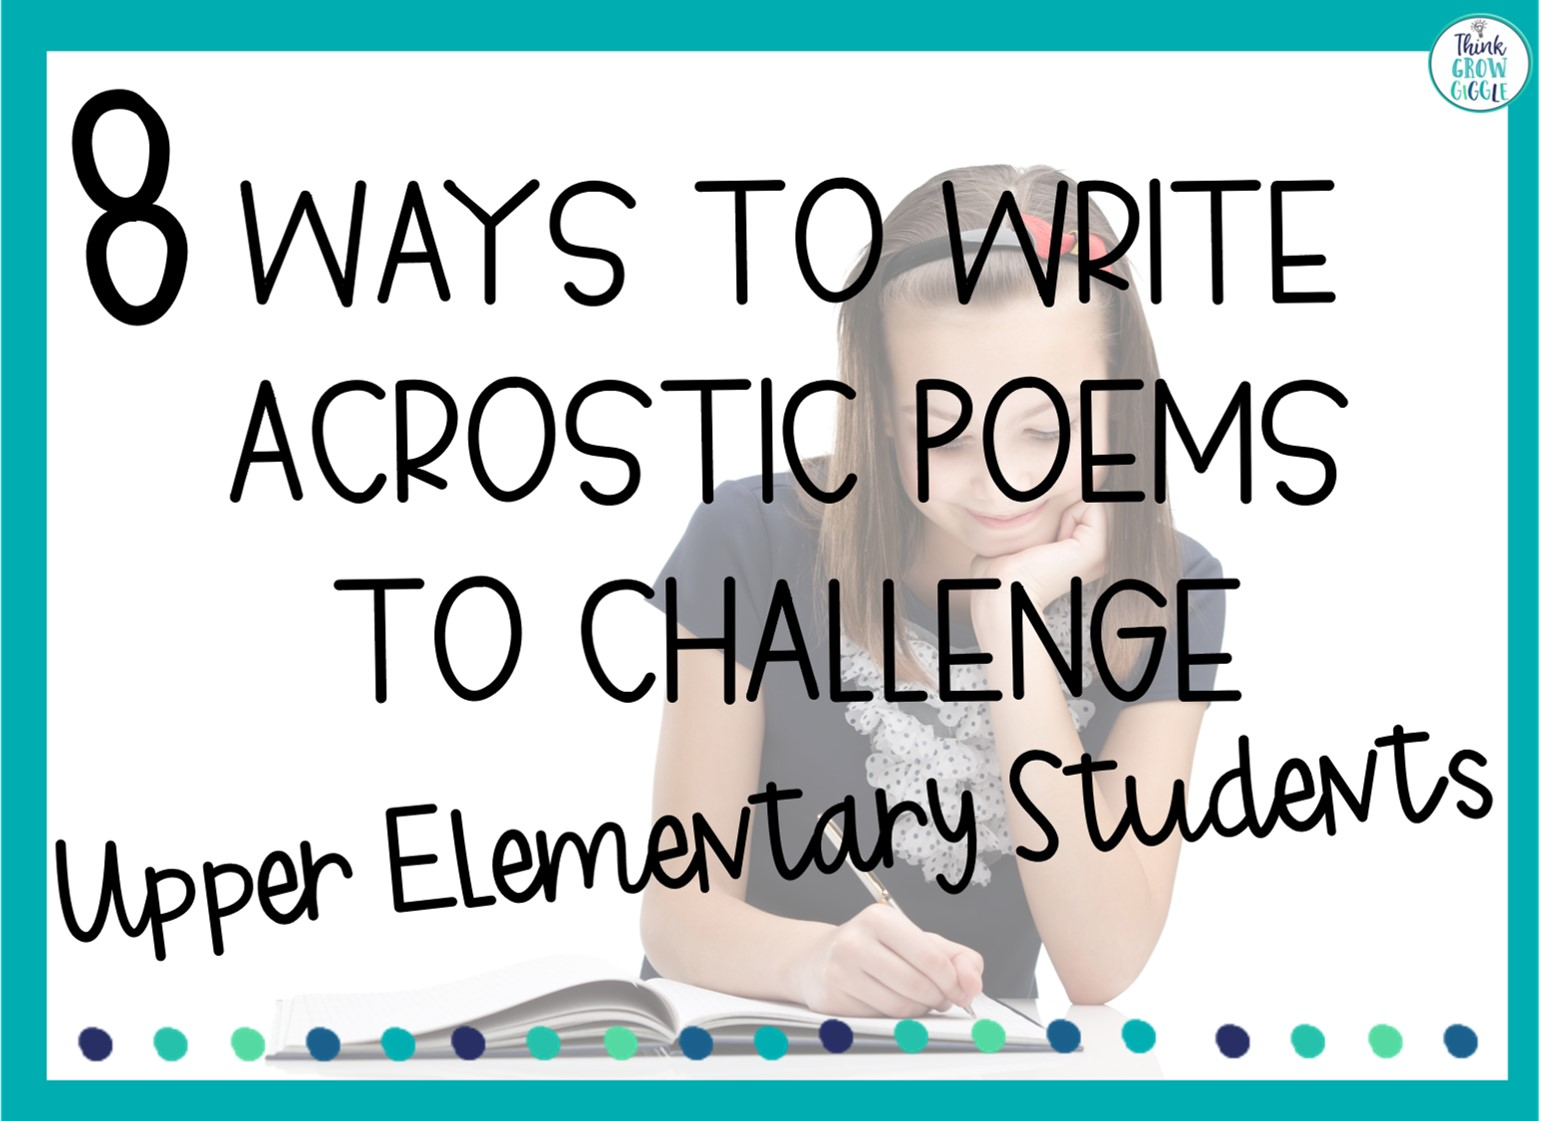 8 Ways to Write Acrostic Poems to Challenge Upper Elementary Students -  Think Grow Giggle [ 1121 x 1543 Pixel ]